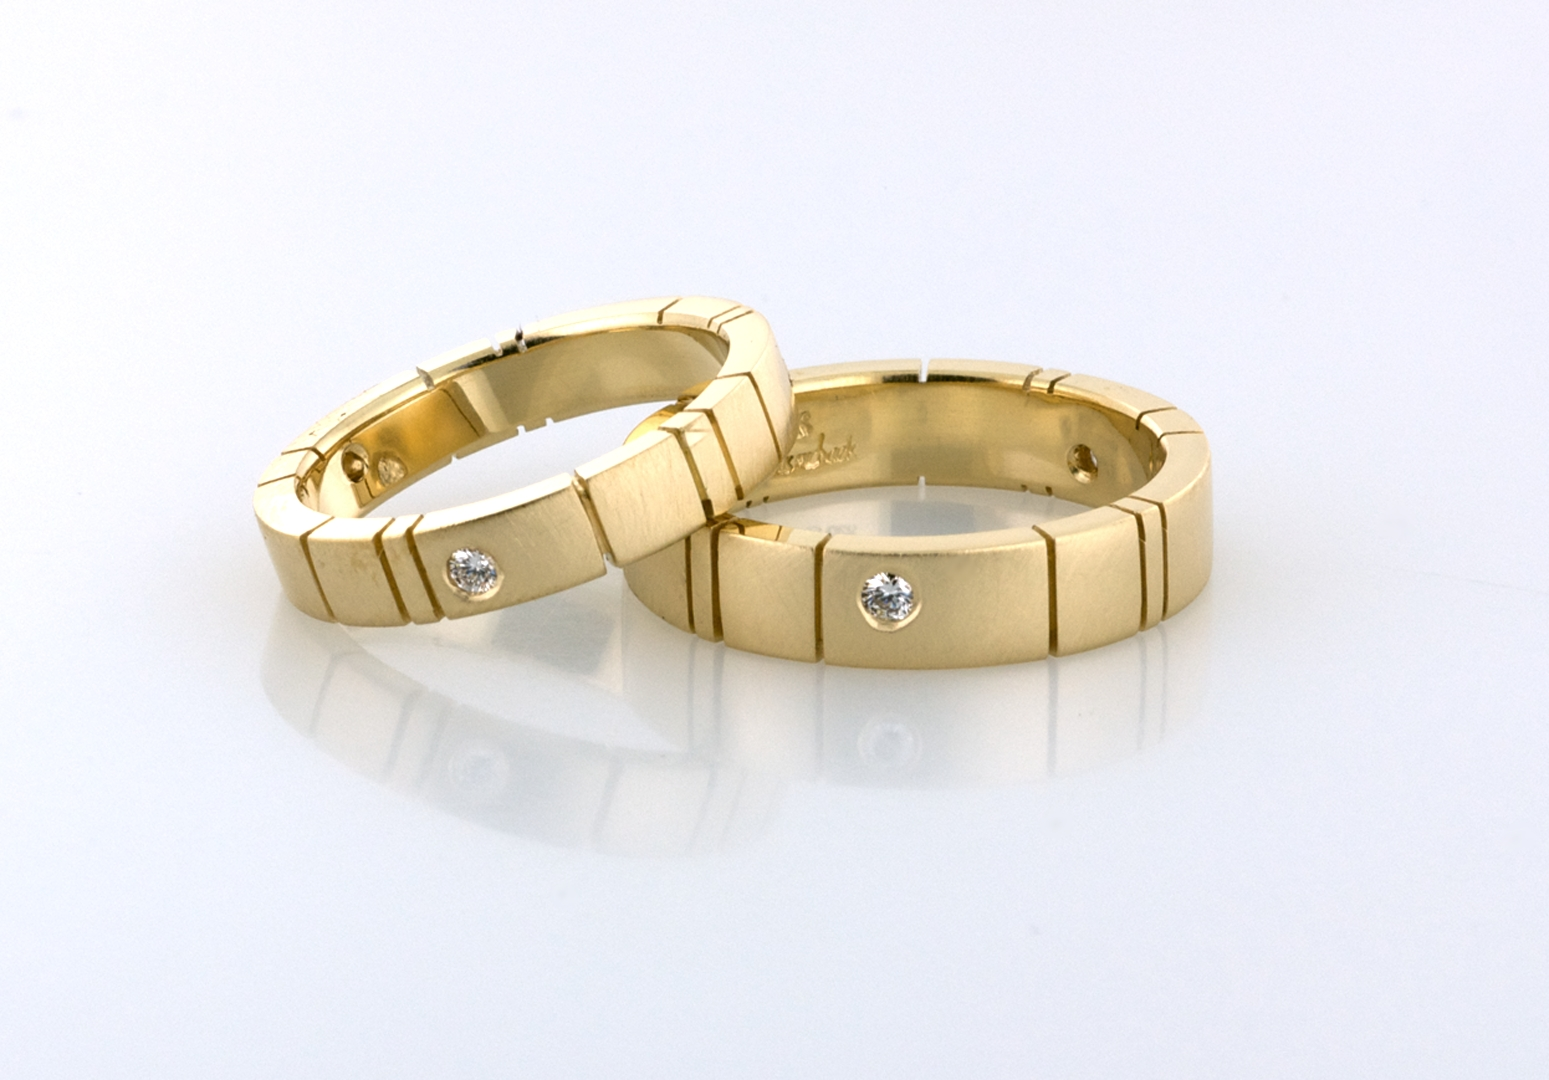 Gold Wedding Bands With Diamond Accents R1010 | Wedding Bands Pertaining To Anniversary Wedding Bands Sets (View 2 of 15)